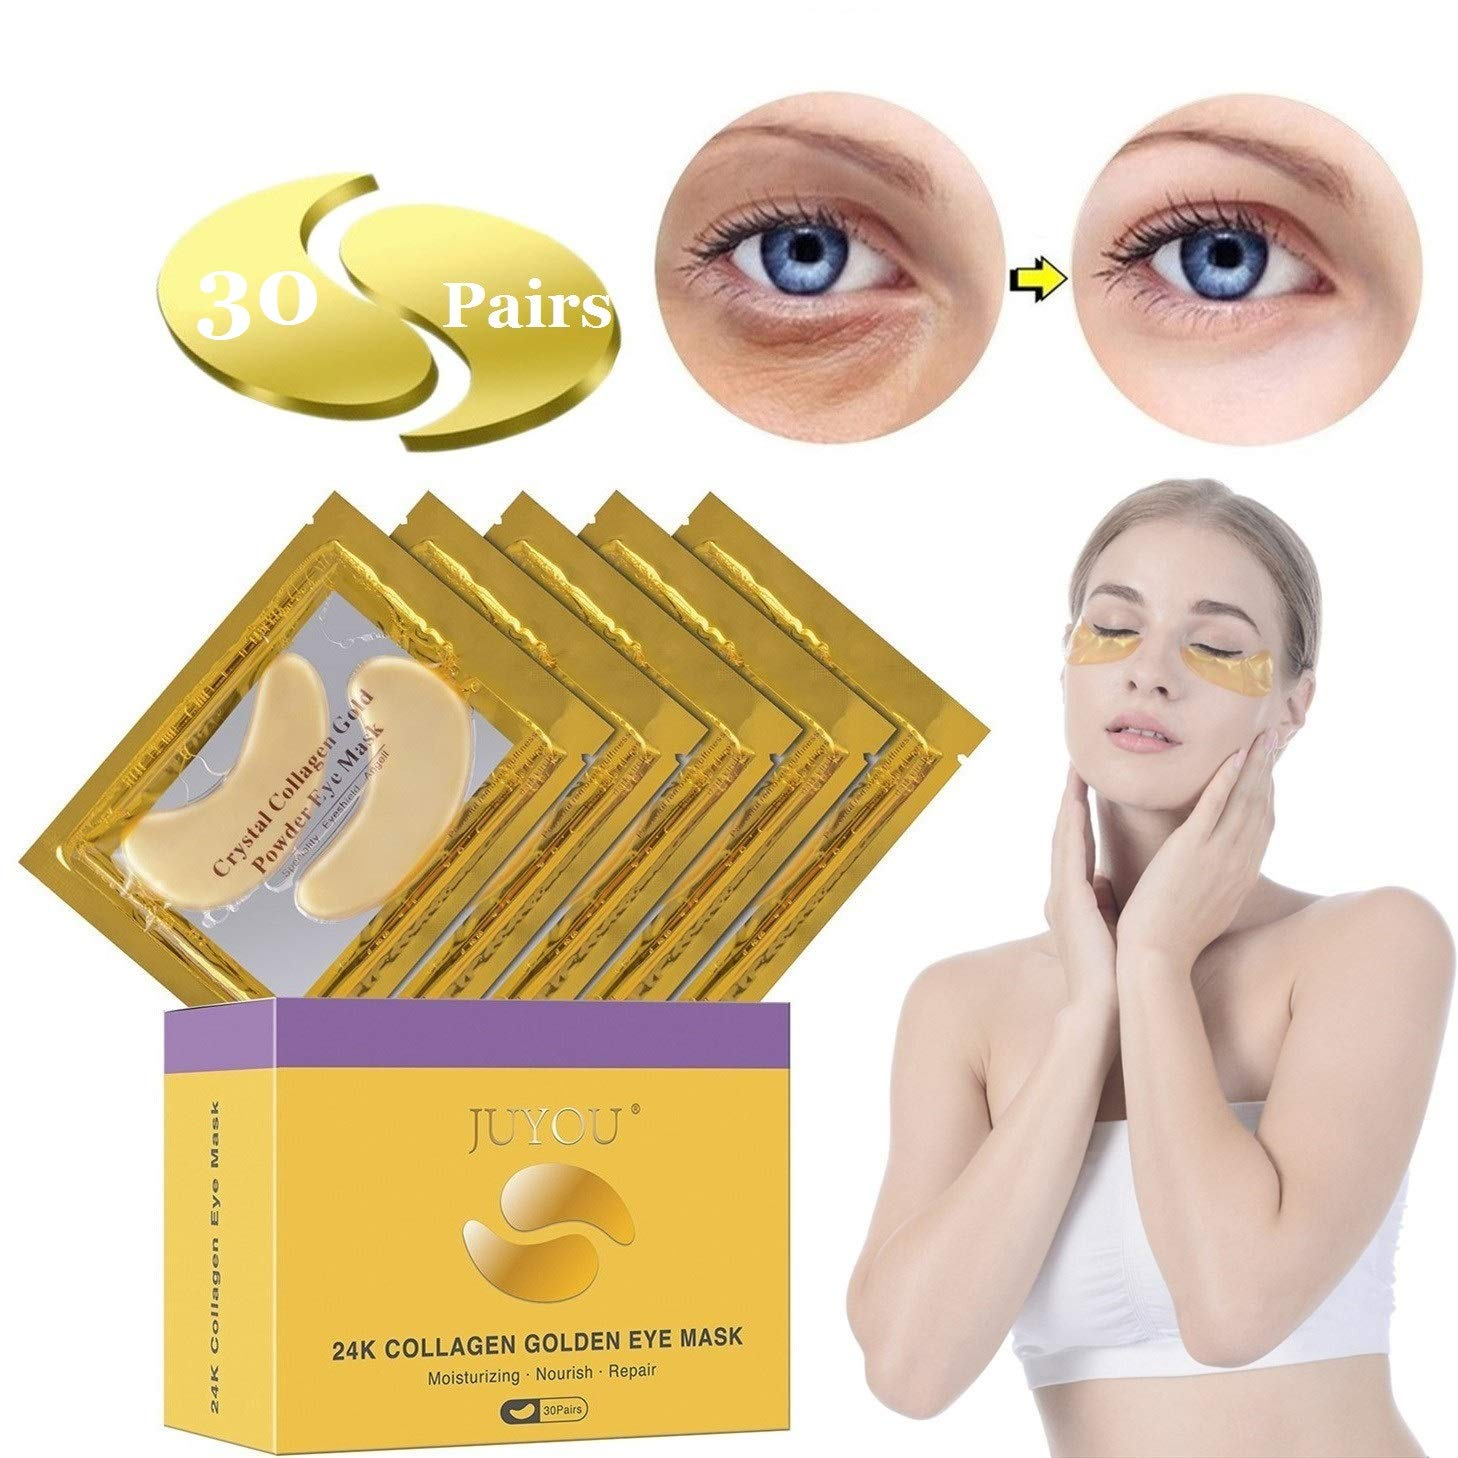 JUYOU 24K Gold Under Eye Patch, Eye Mask, Collagen Eye Patch, Eye Pads For Anti-wrinkles, Puffy Eyes, Dark Circles, Fine Lines Treatment 30 Pairs by JUYOU